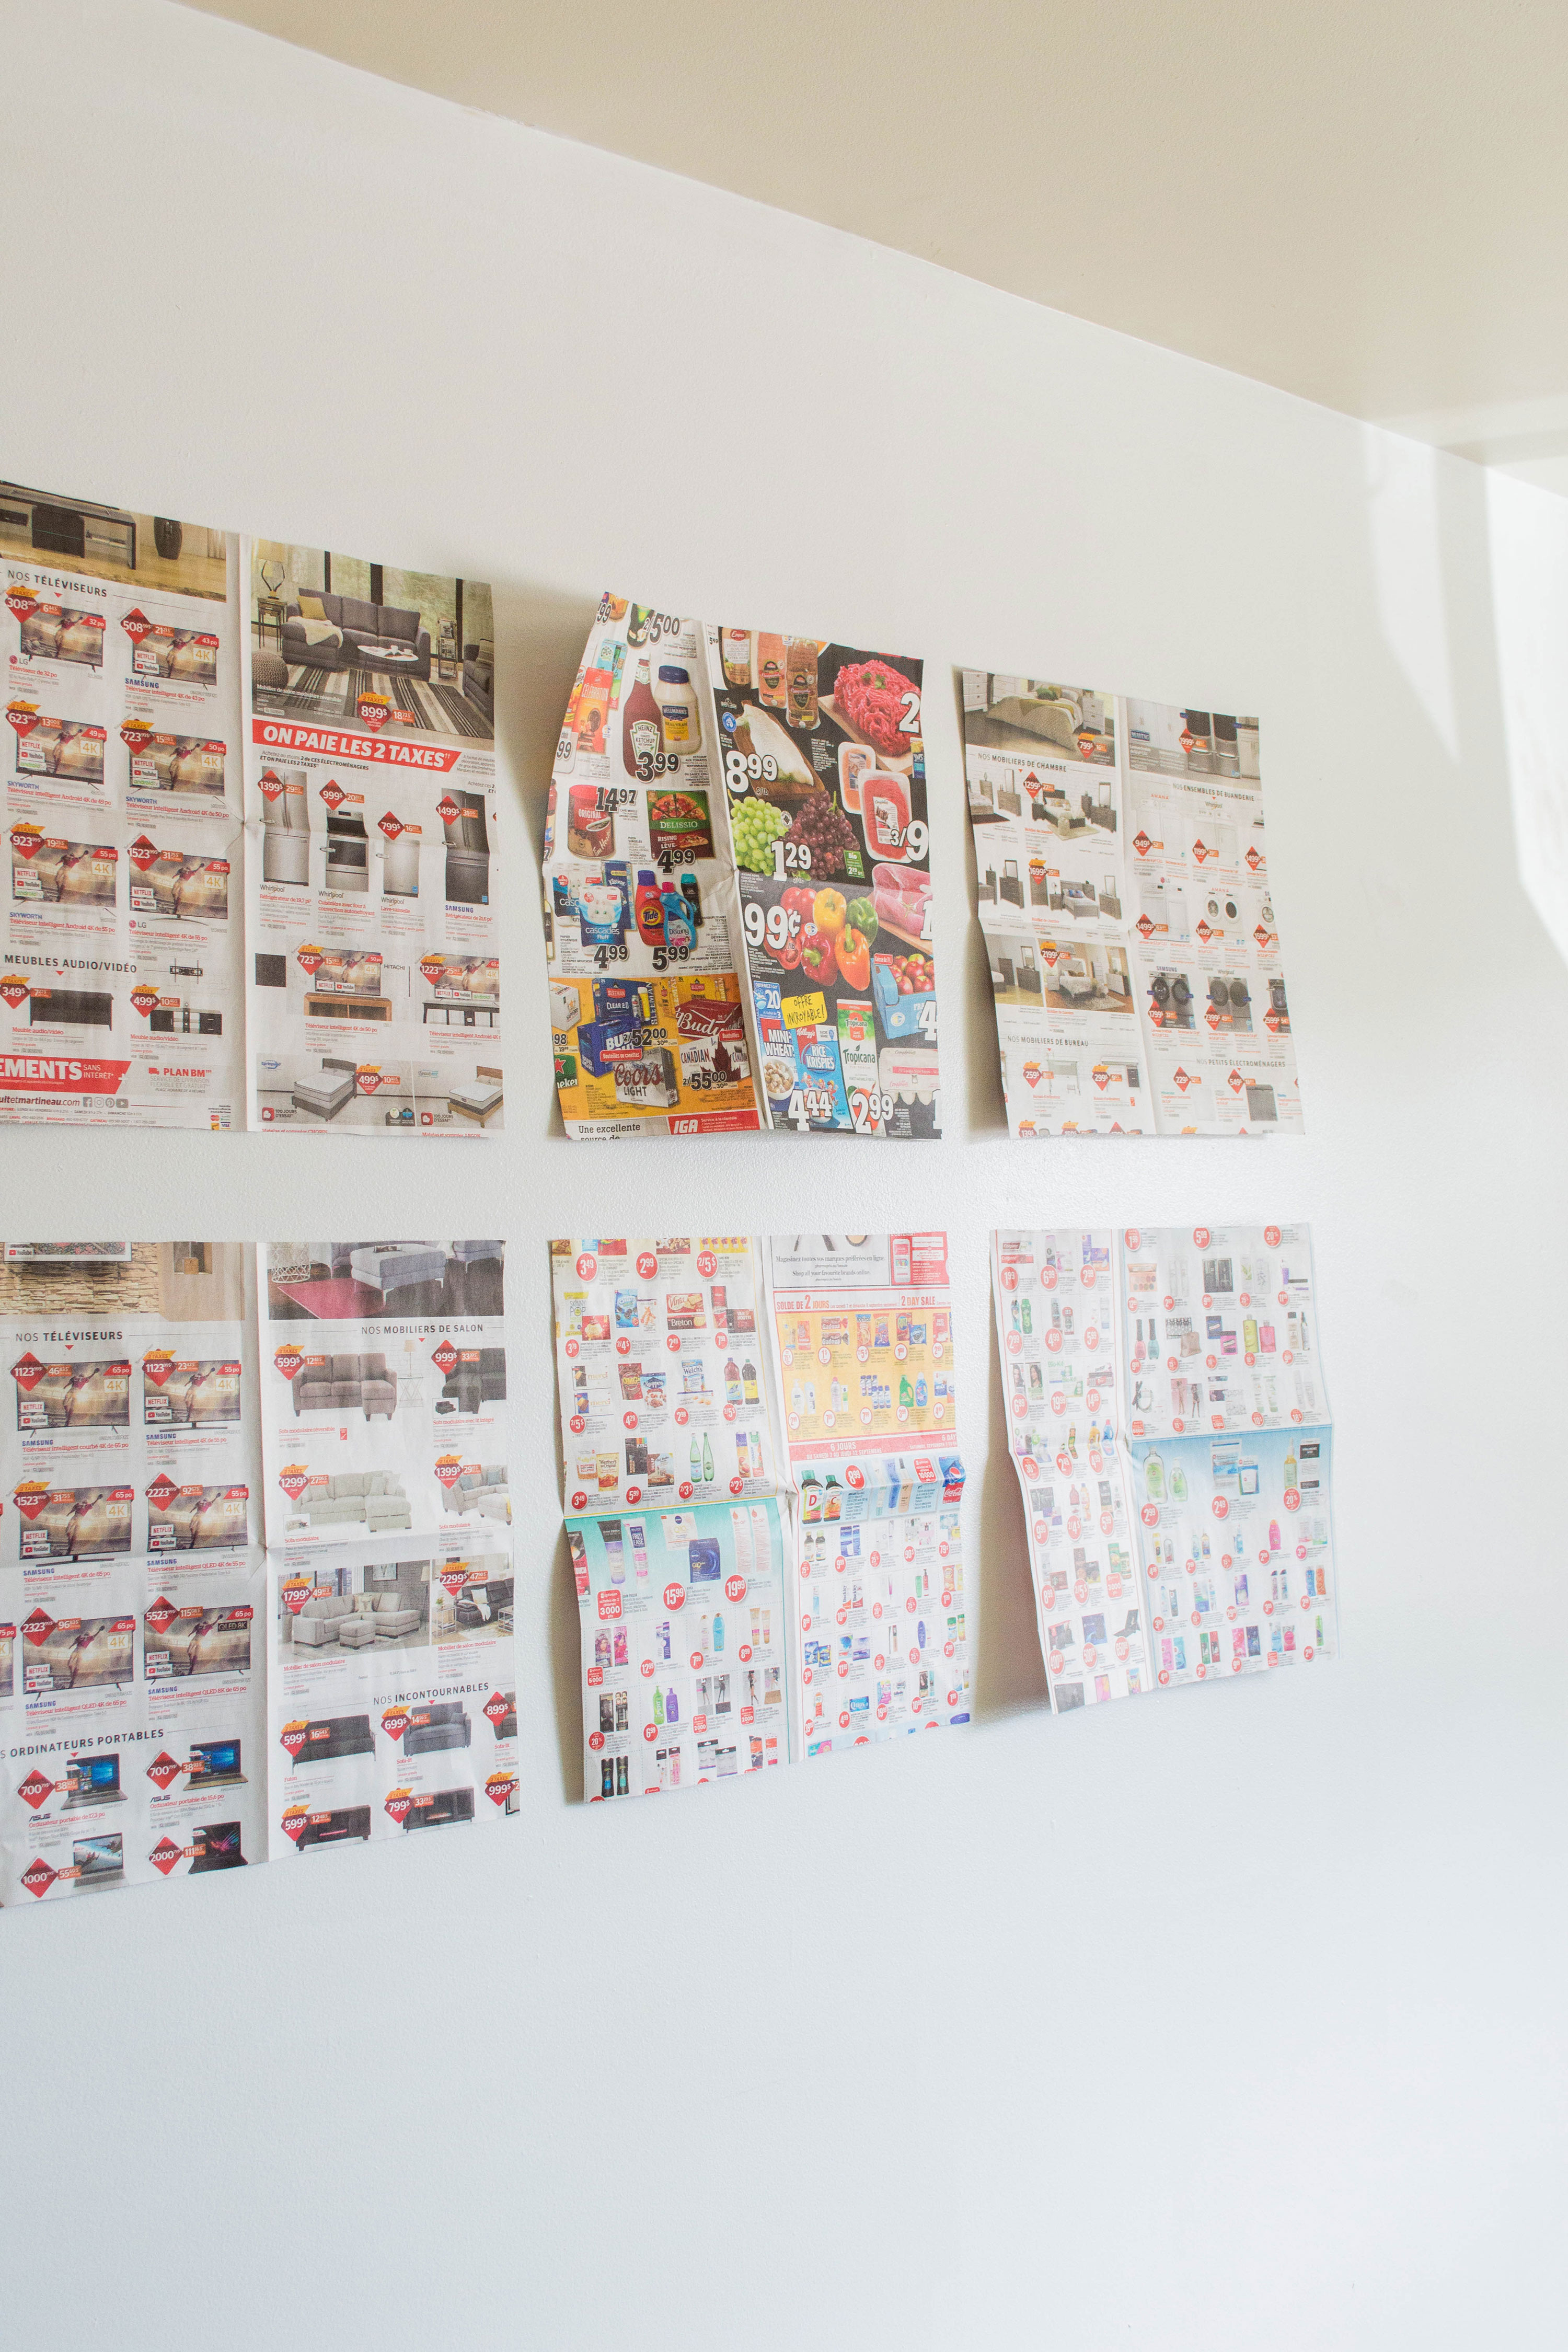 Impress your guests with the easiest gallery wall layout: grid style! My DIY guide will help any beginner DIYer. Come join me for some decorating fun! #gallerywall #gallerywallideas